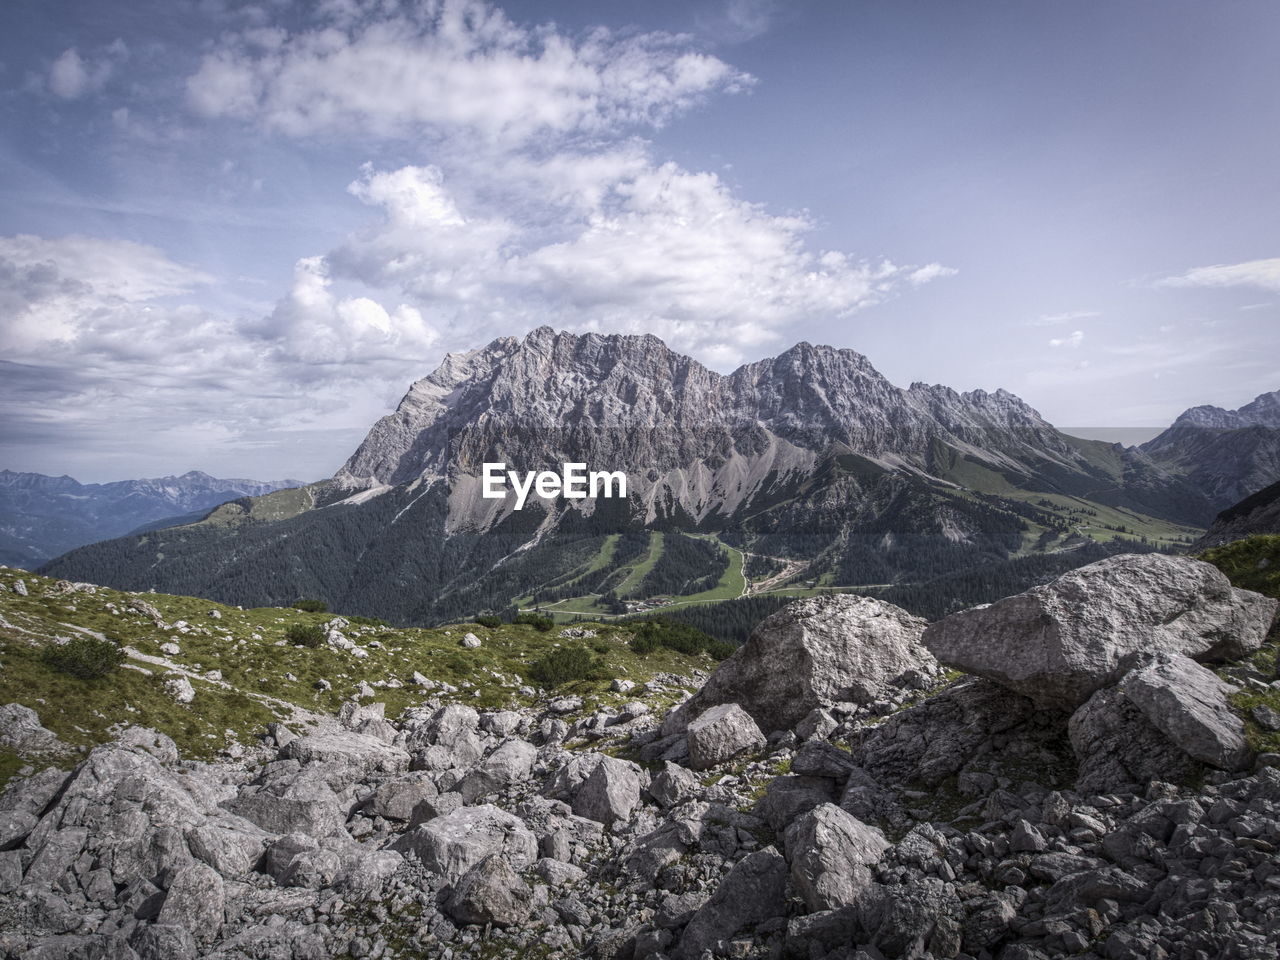 mountain, sky, landscape, nature, beauty in nature, outdoors, scenics, day, no people, scenery